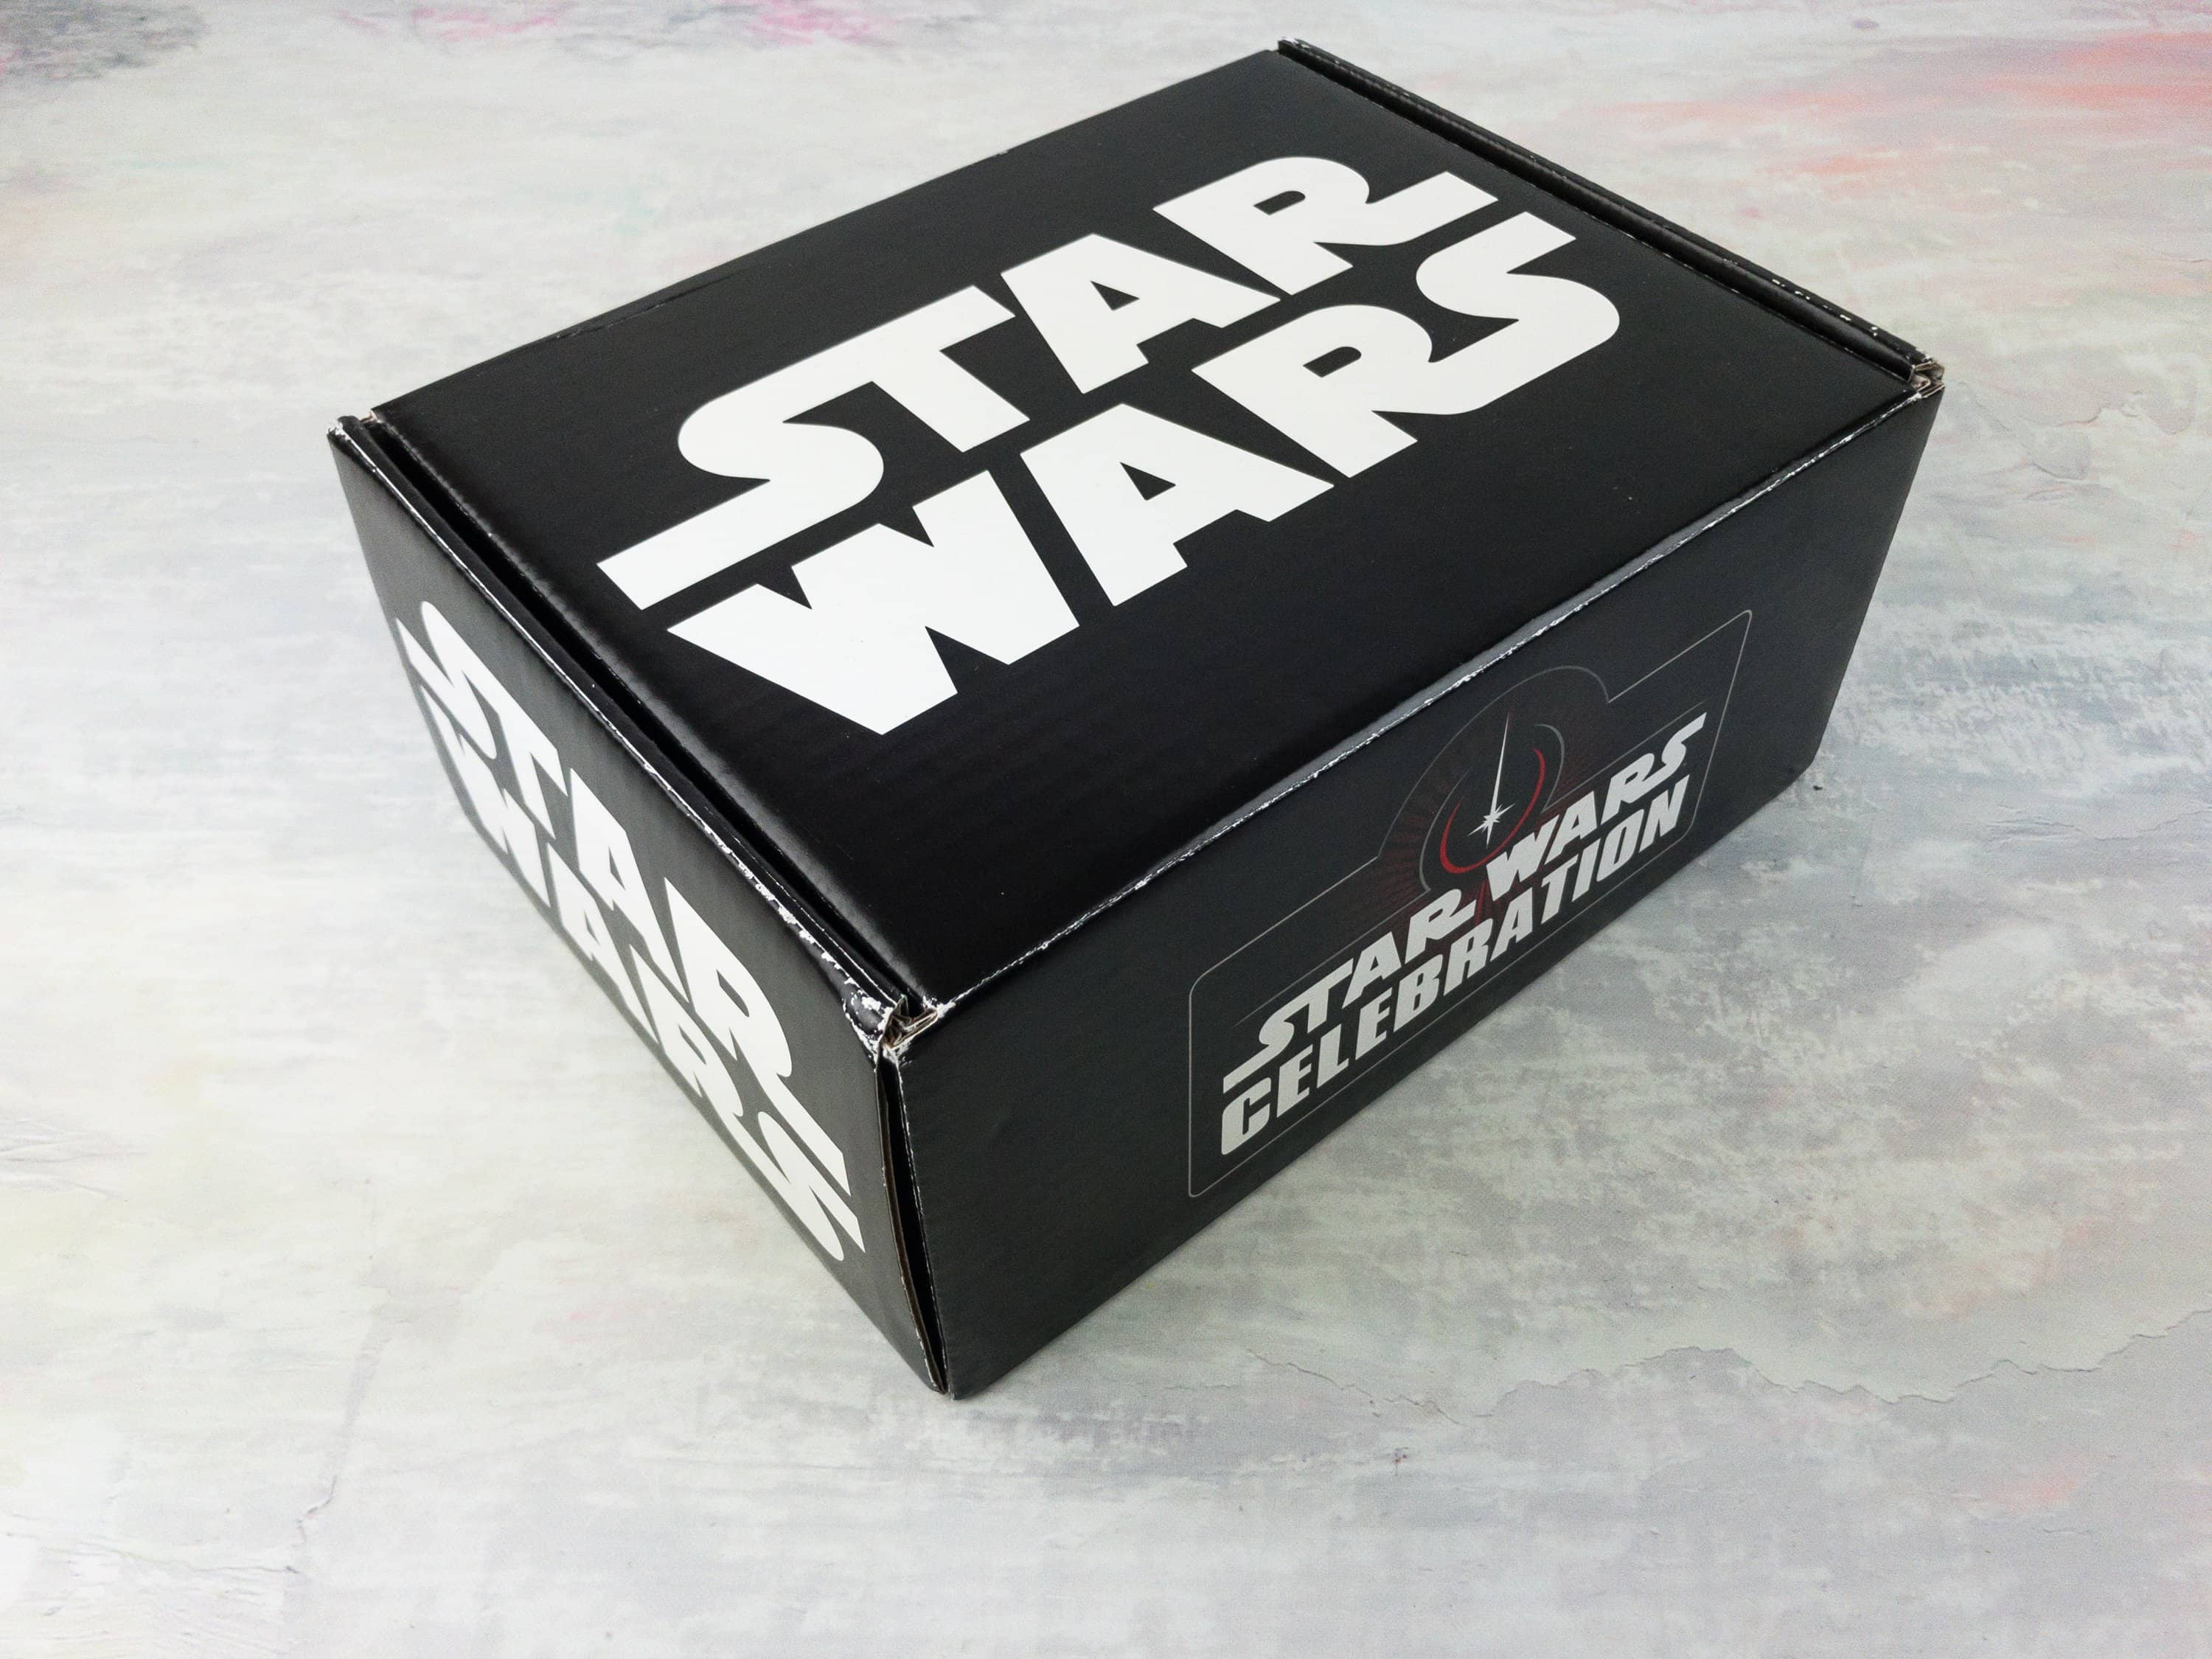 2017 Star Wars Limited Edition Box by Nerd Block Review